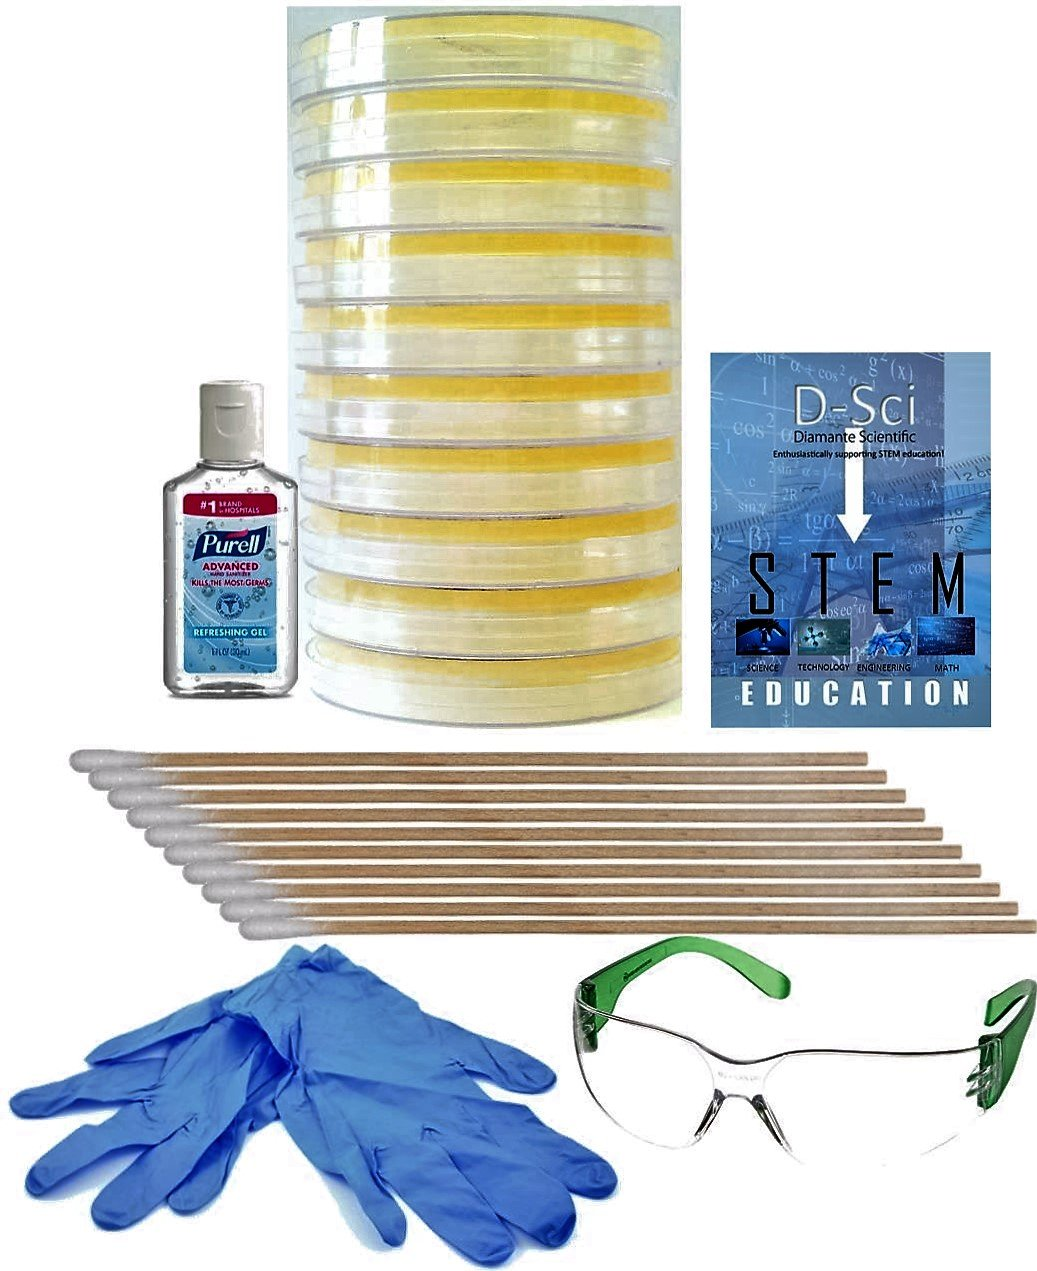 Complimentary Project Guide eBook Available. Premium Bacteria Science Fair Project Kit Learn About Microbiology Safest Bacteria Kit For Students Includes Gloves and Safety Glasses